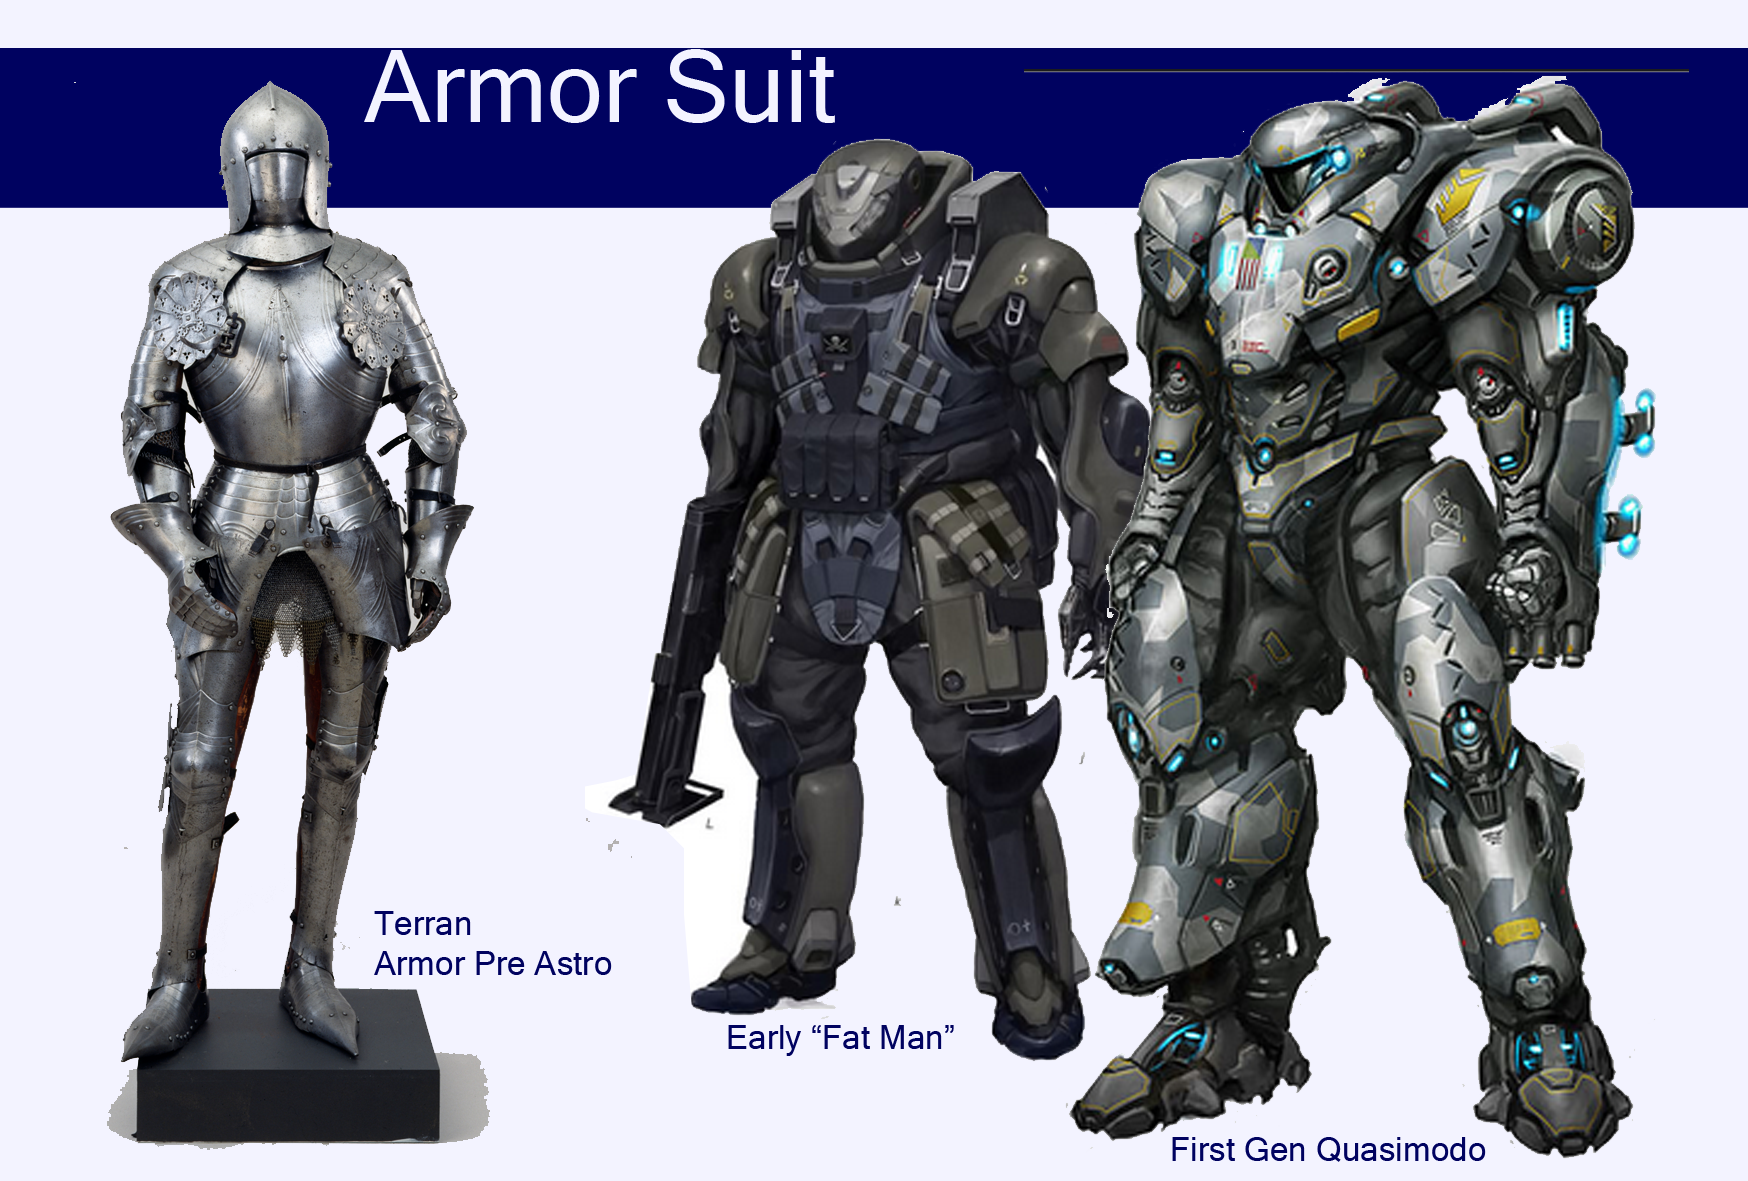 Armor suits